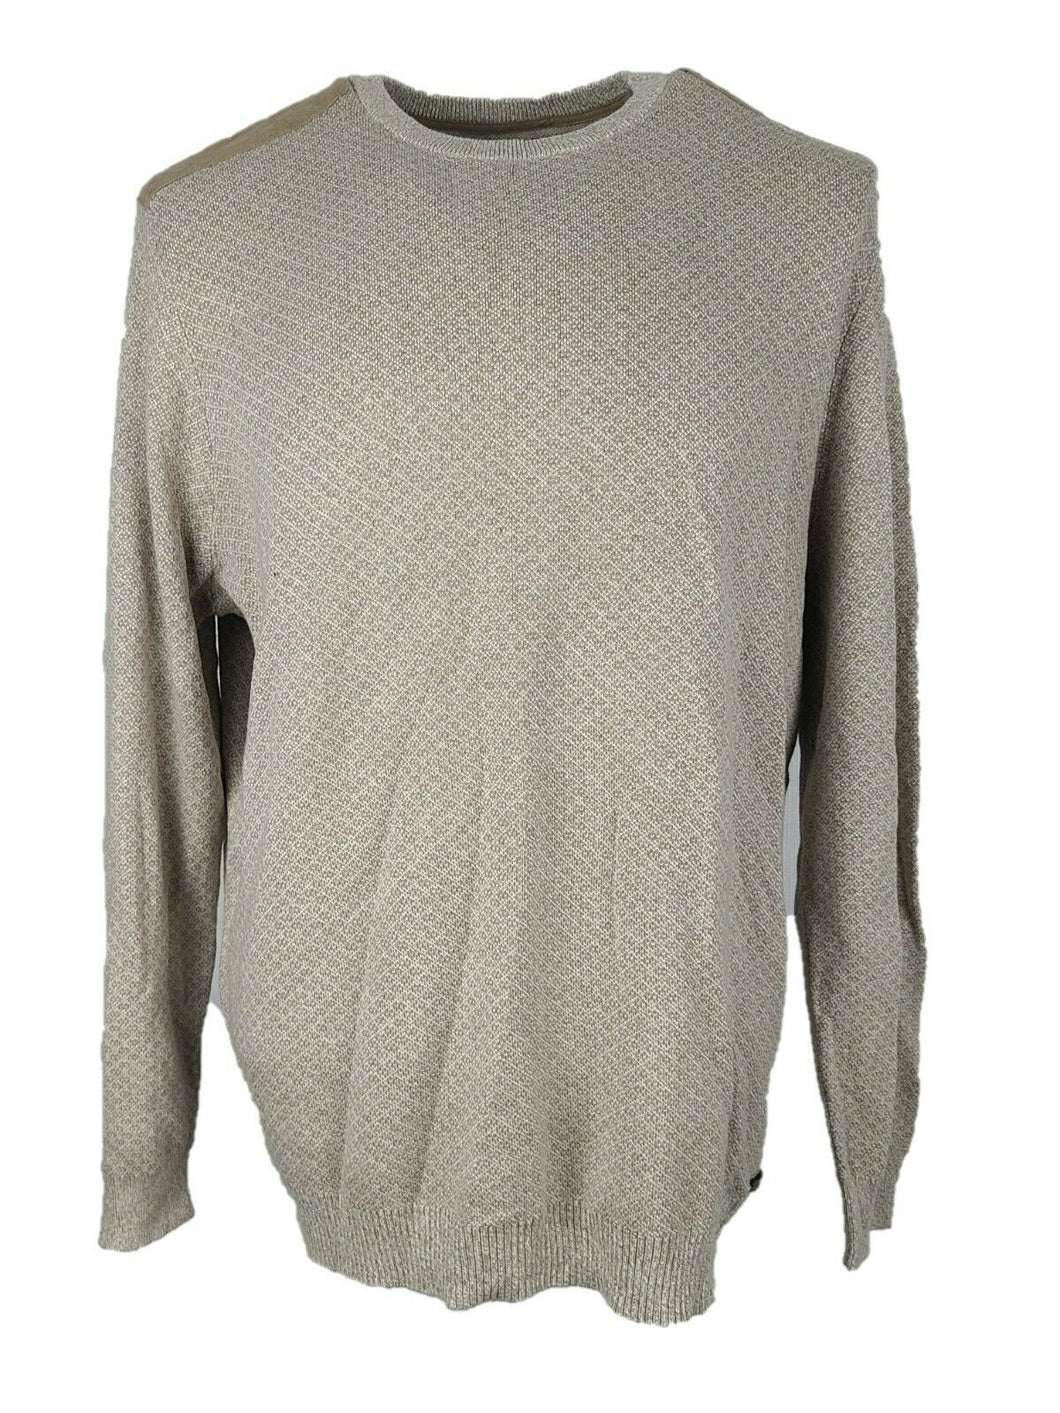 Men Jasso Elba Sweater Size XL Color Brown Super Soft Cotton Silk Blend